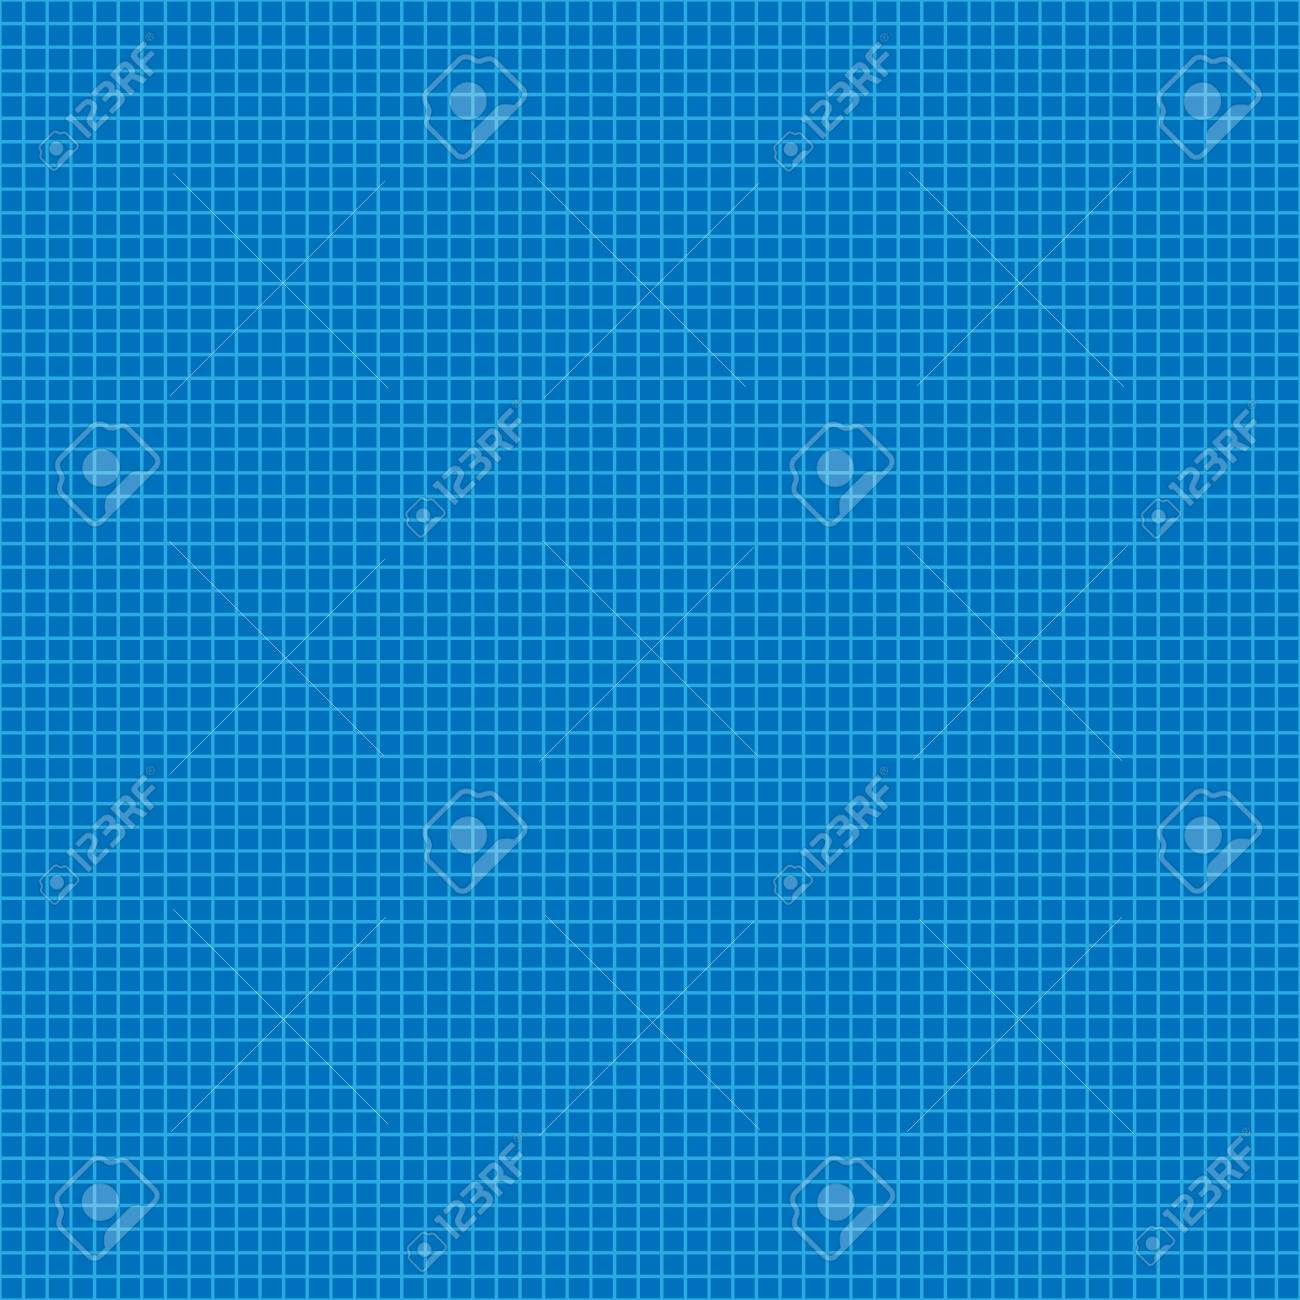 Blueprint background grid vector texture vector illustration blueprint background grid vector texture vector illustration stock vector 97111028 malvernweather Images